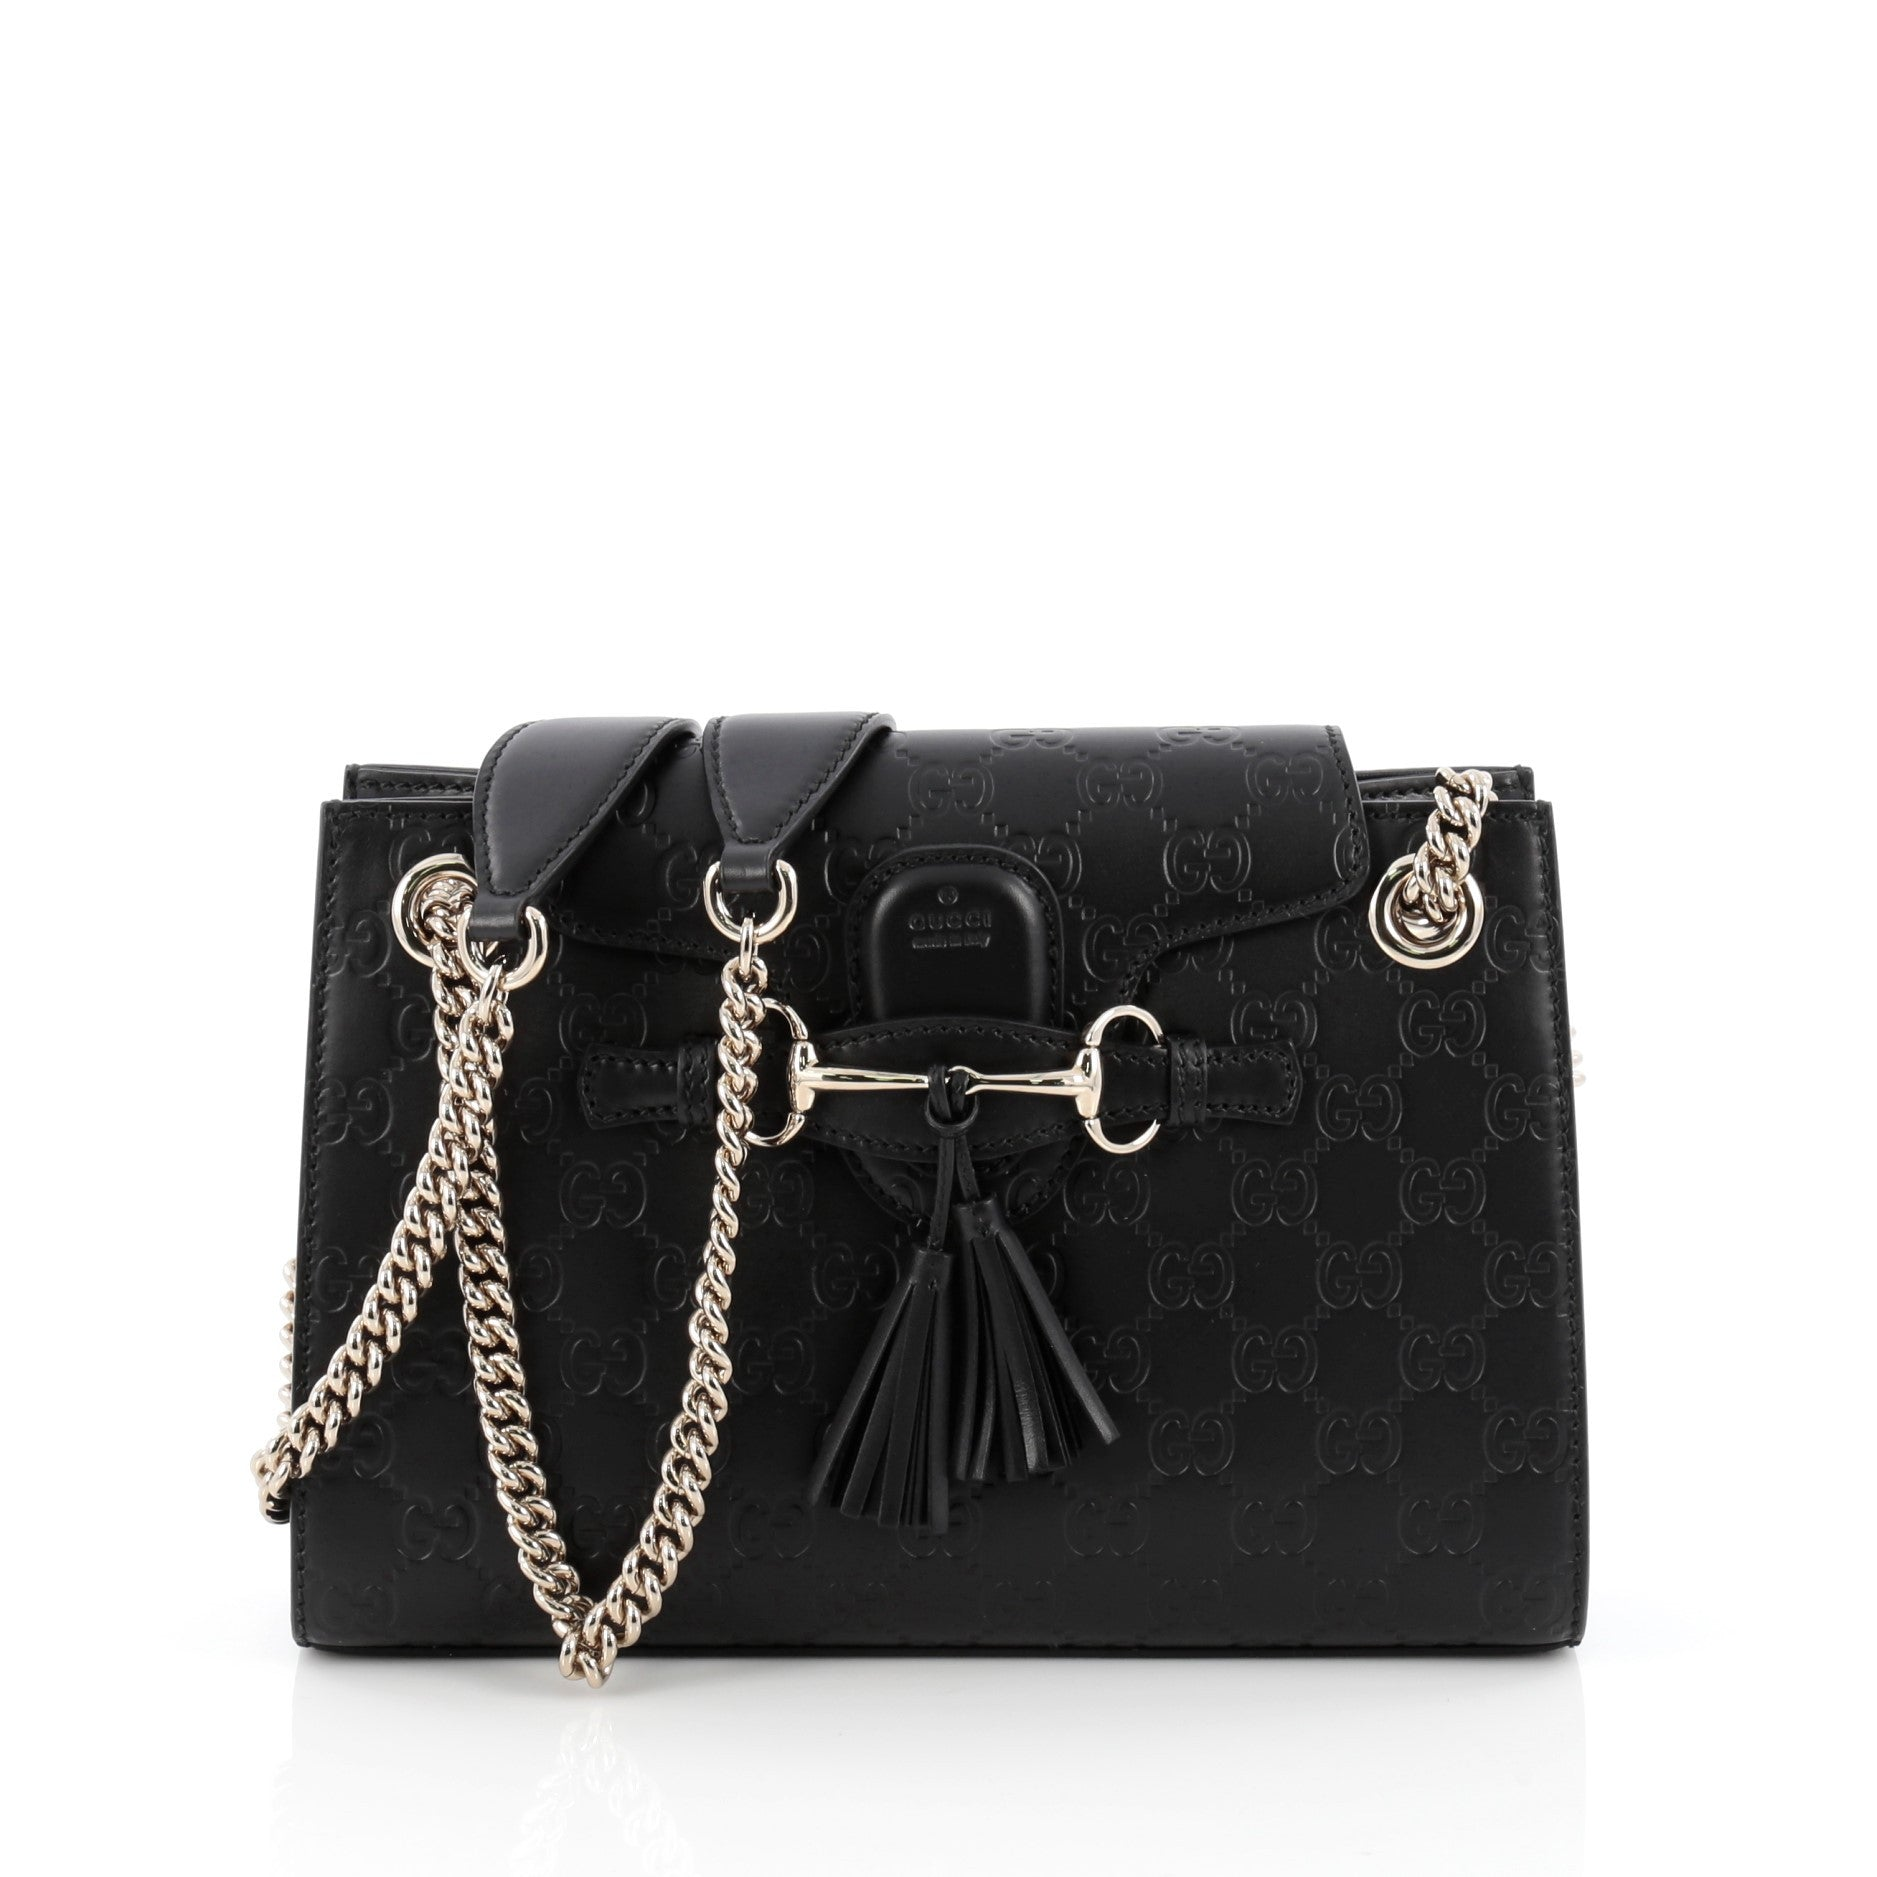 c5bf40f92493 16508-02_Gucci_Emily_Chain_Flap_Shoulder_Bag_Gucci_2D_0003.jpg?v=1488302382